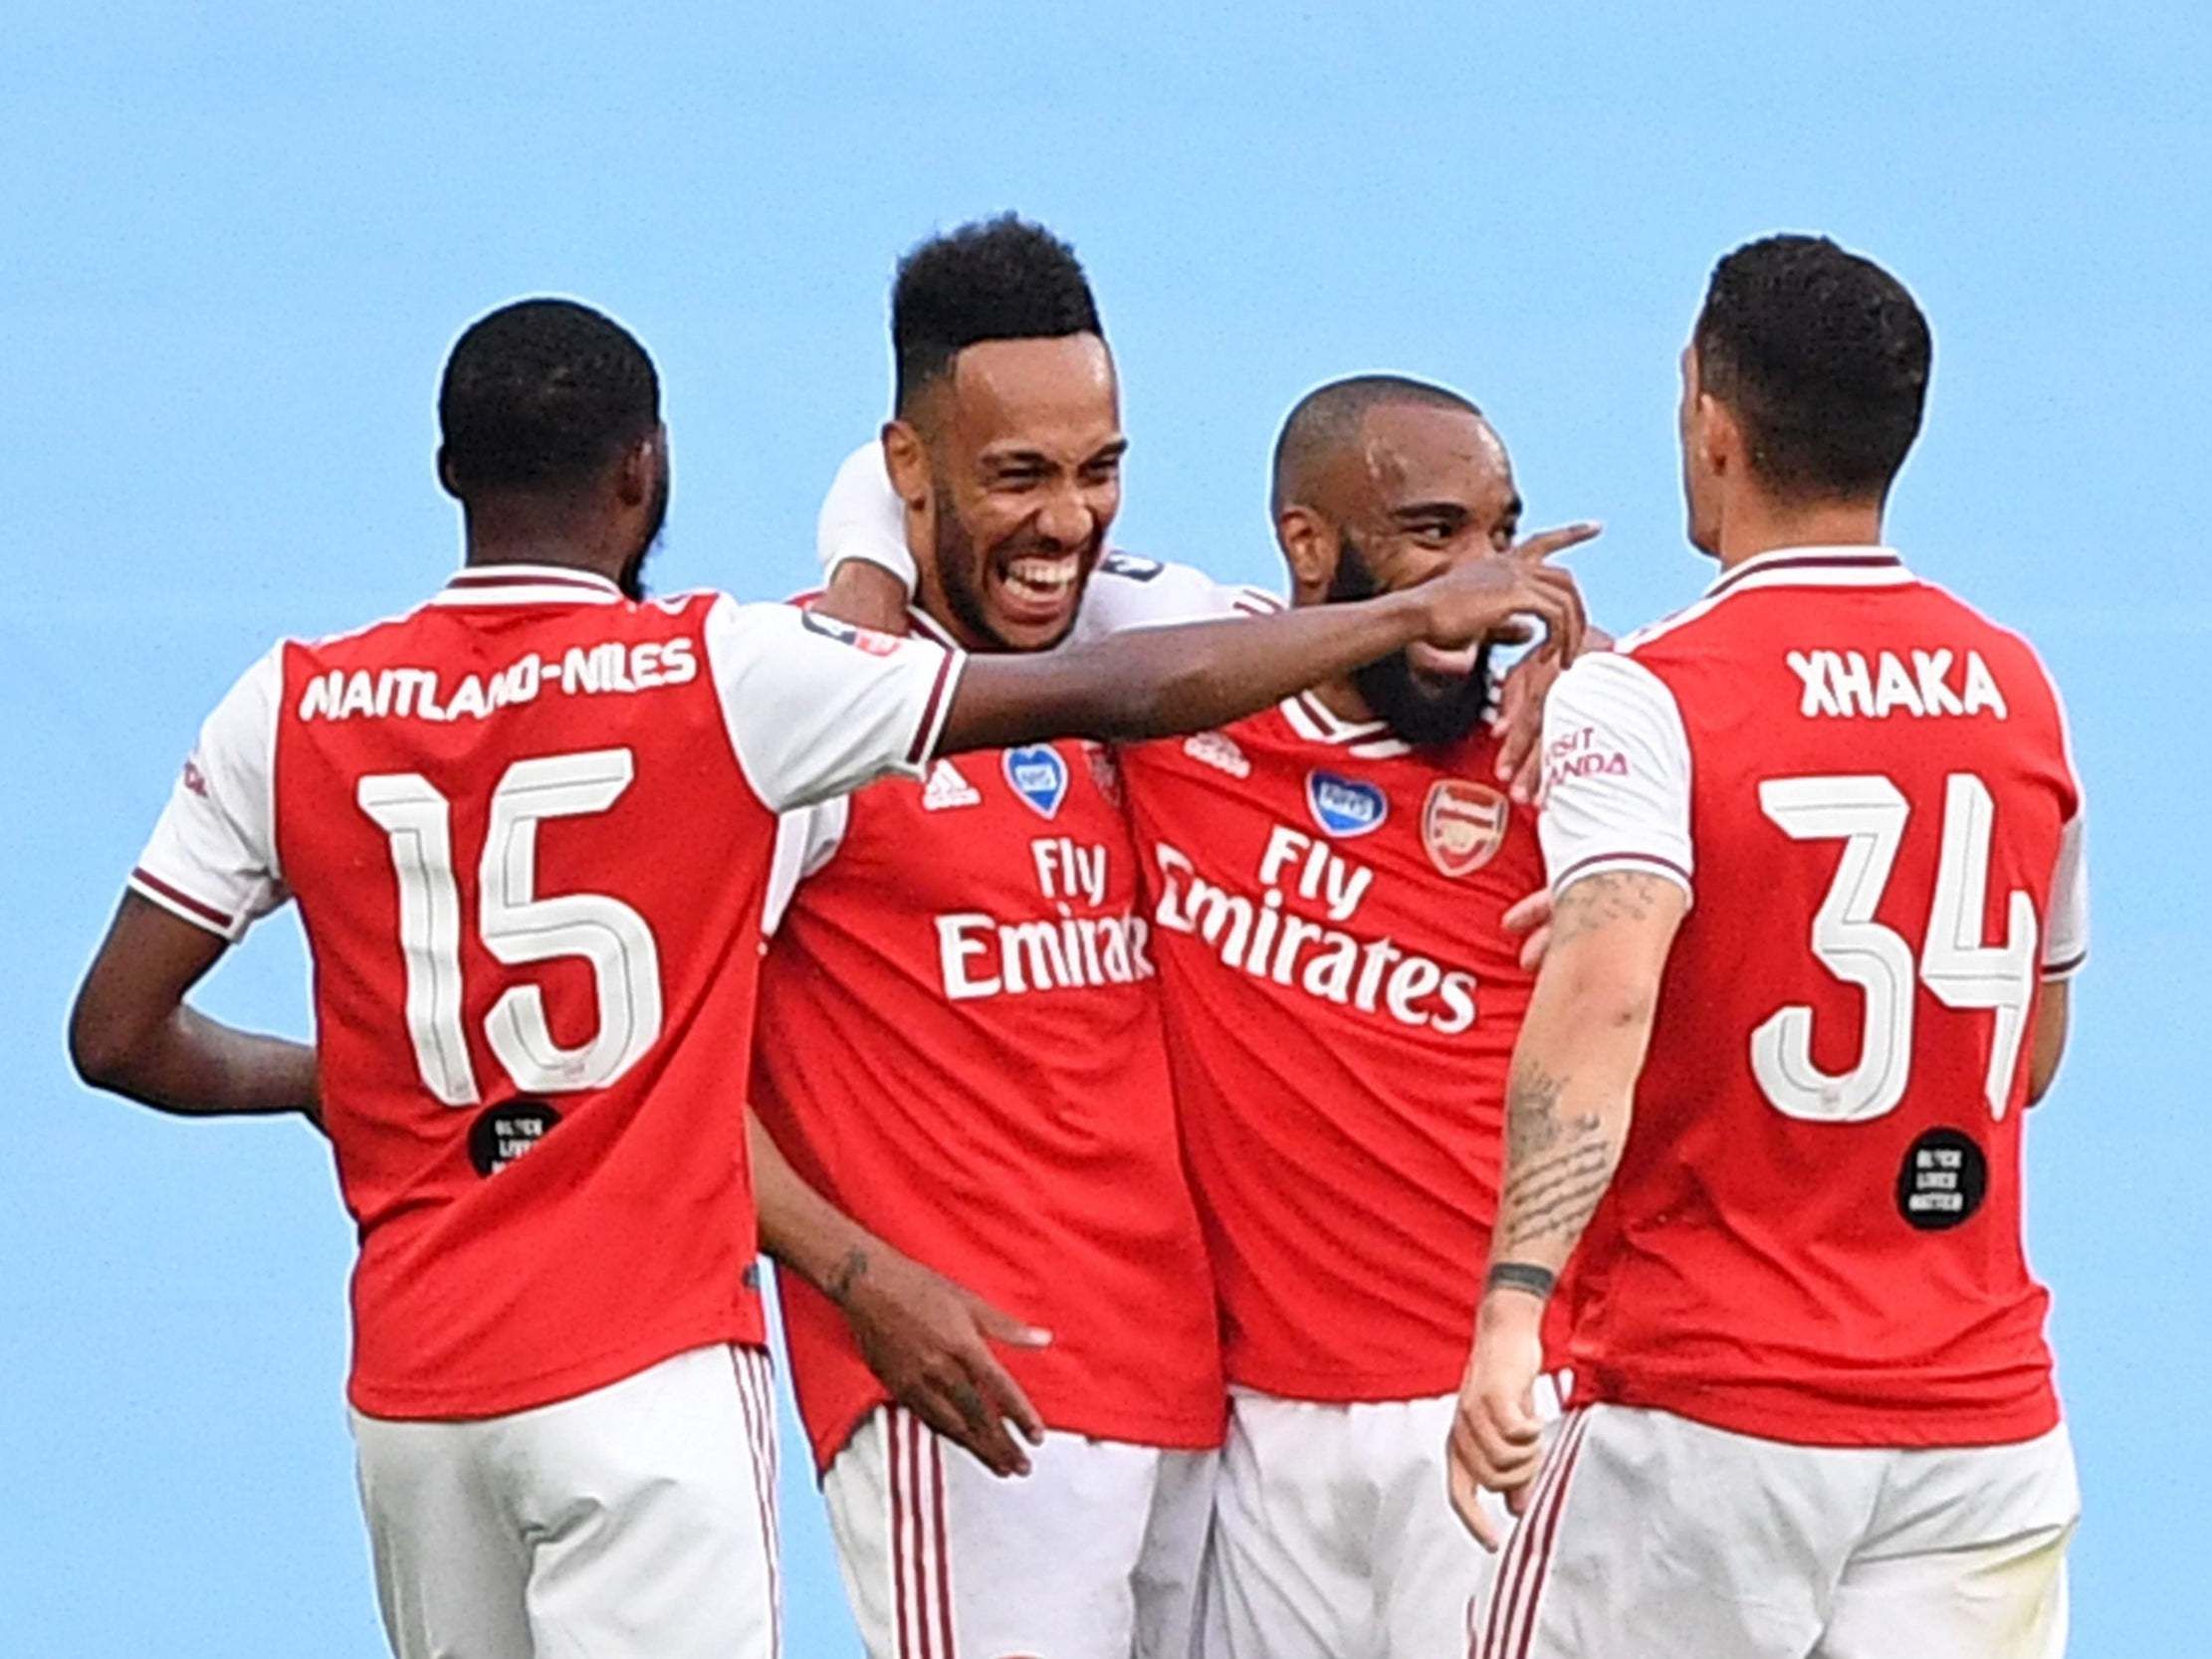 Arsenal vs Man City LIVE: Result and reaction from FA Cup semi-final tonight thumbnail